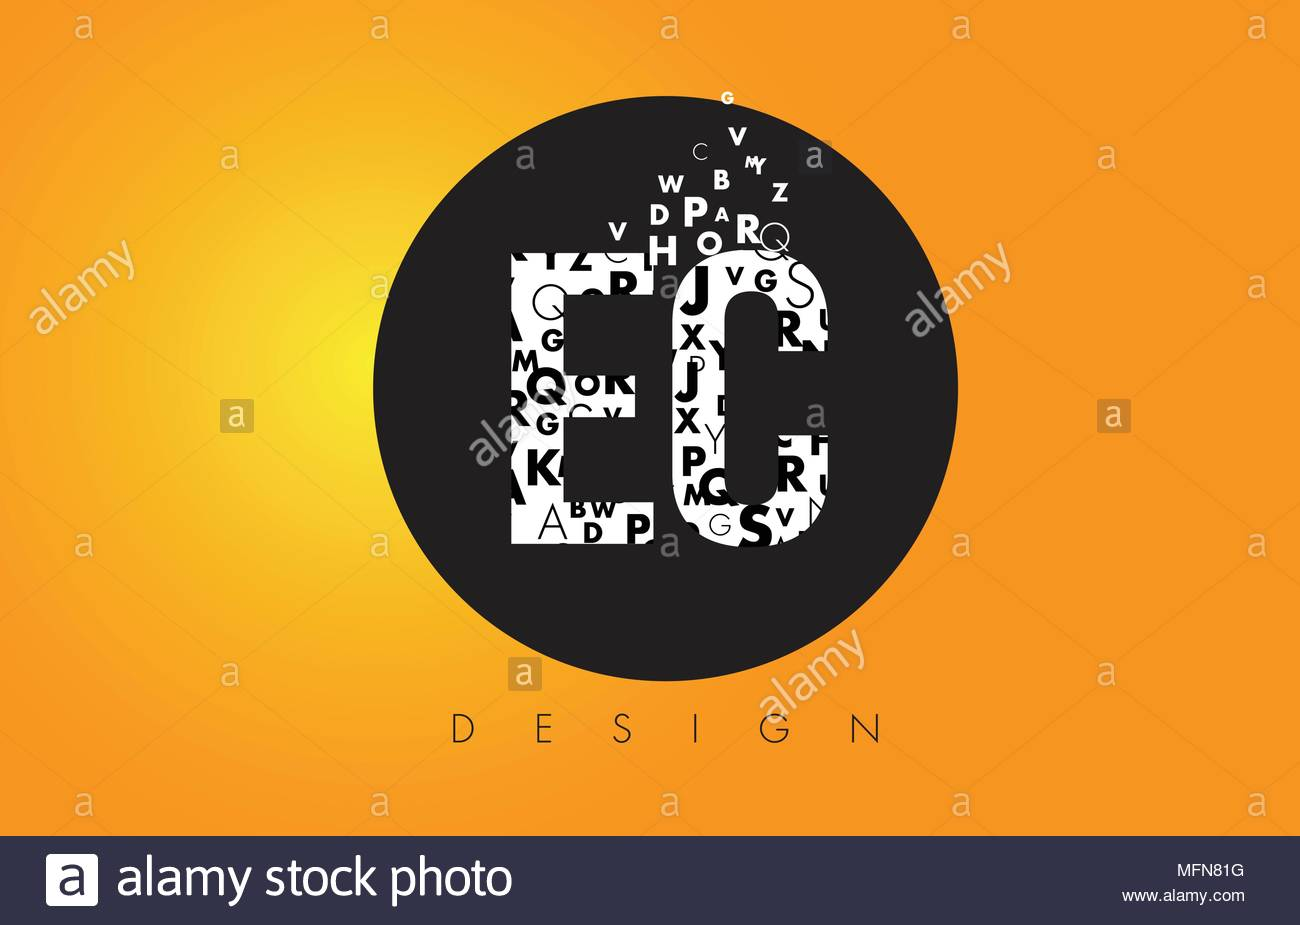 EC E C Logo Design Made of Small Letters with Black Circle and 1300x925